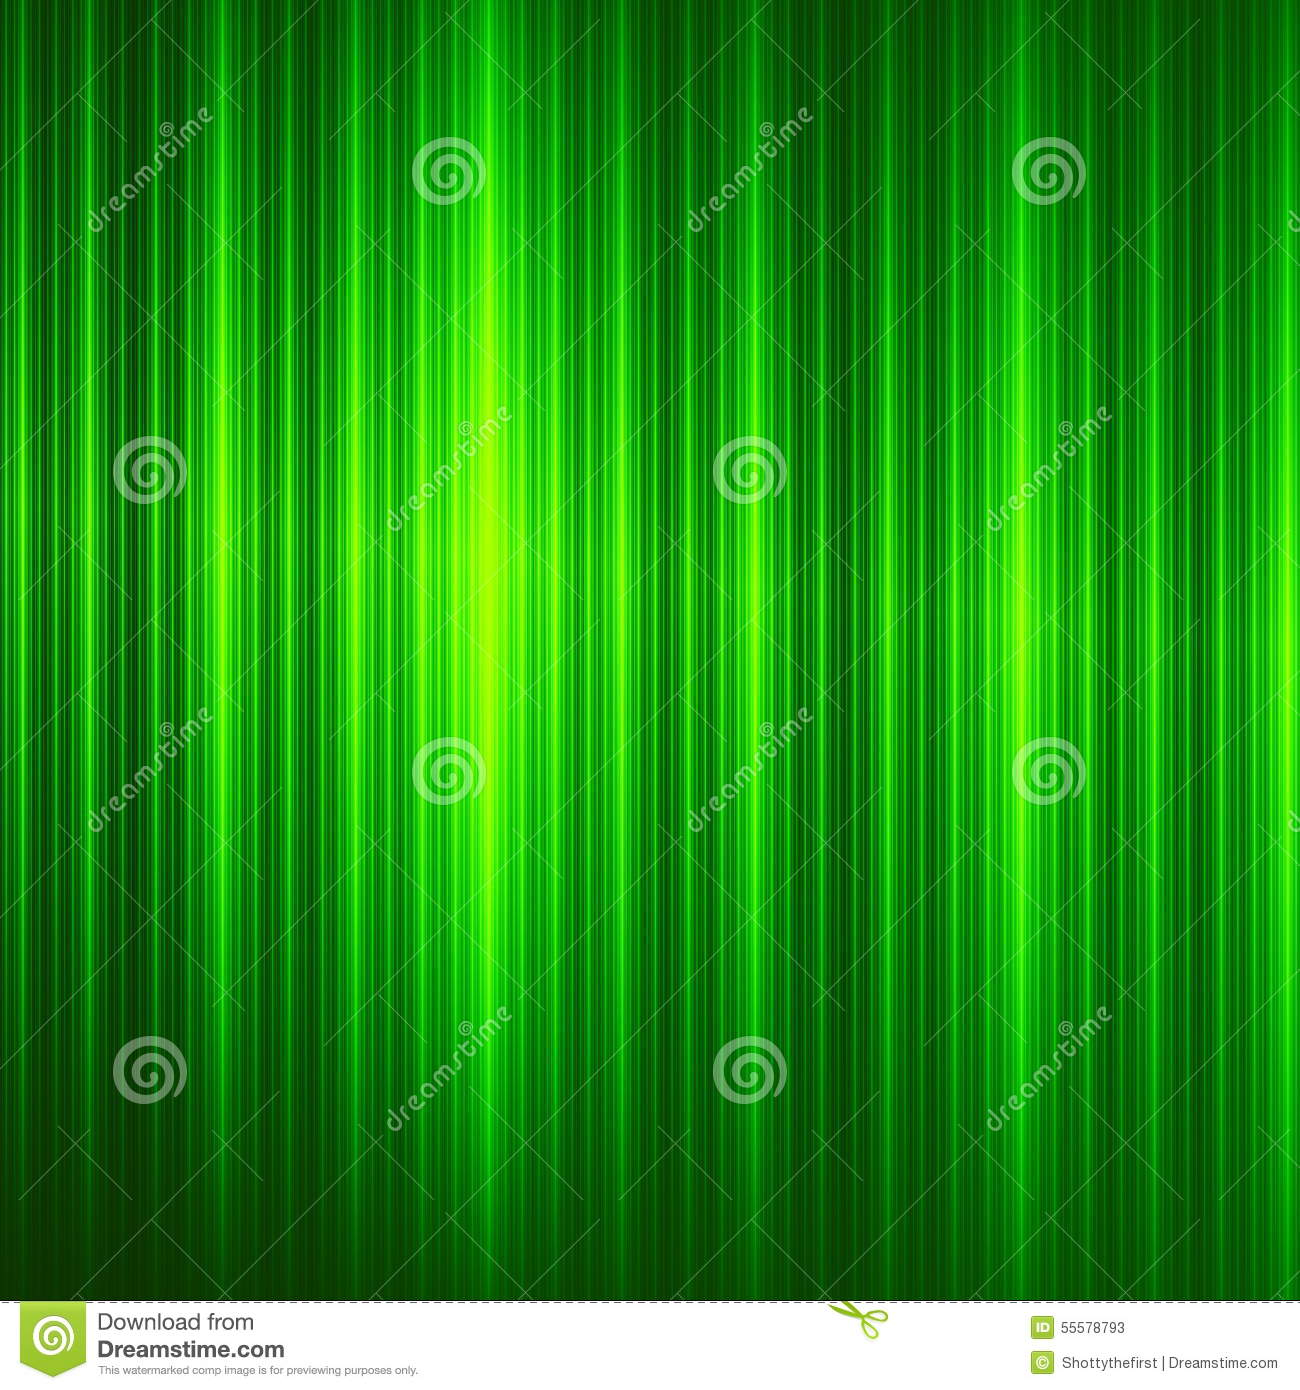 green screen backgrounds free templates - modern green business background invitation card